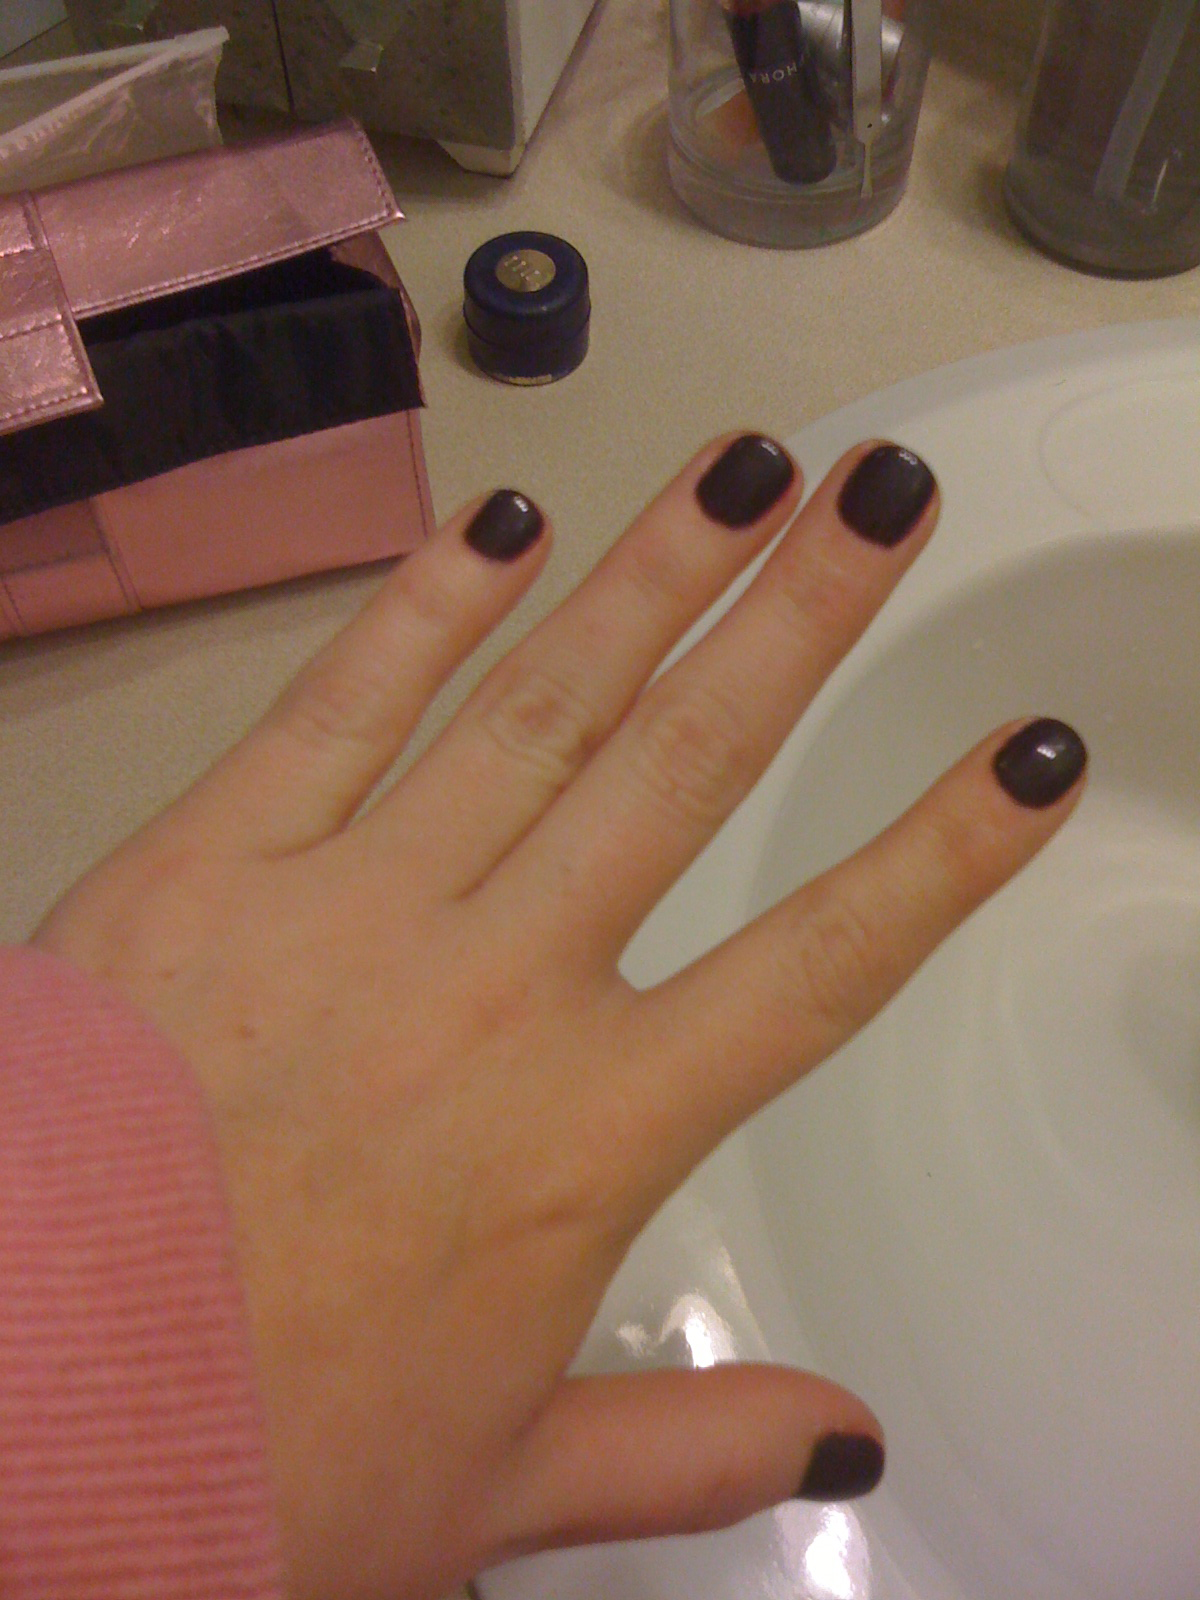 !: New Gel Nail Poish Manicure! - gel nails vs solar nails photos